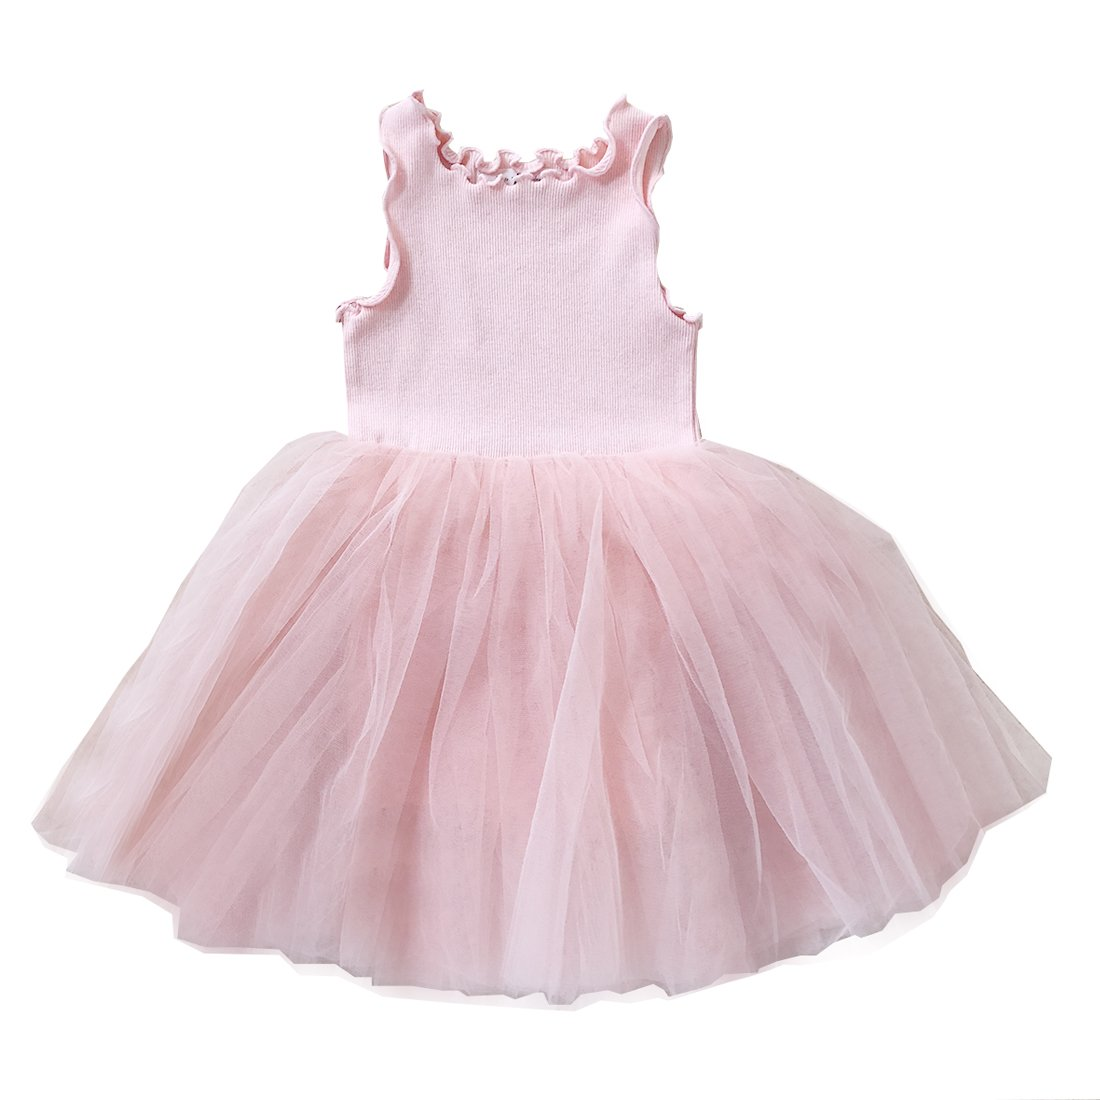 好評 Petite ベビーガールズ Hailey DRESS Petite ベビーガールズ 9Y ピンク ピンク B07B4JWZXL, DELTA FACILITIES:b76cd072 --- a0267596.xsph.ru